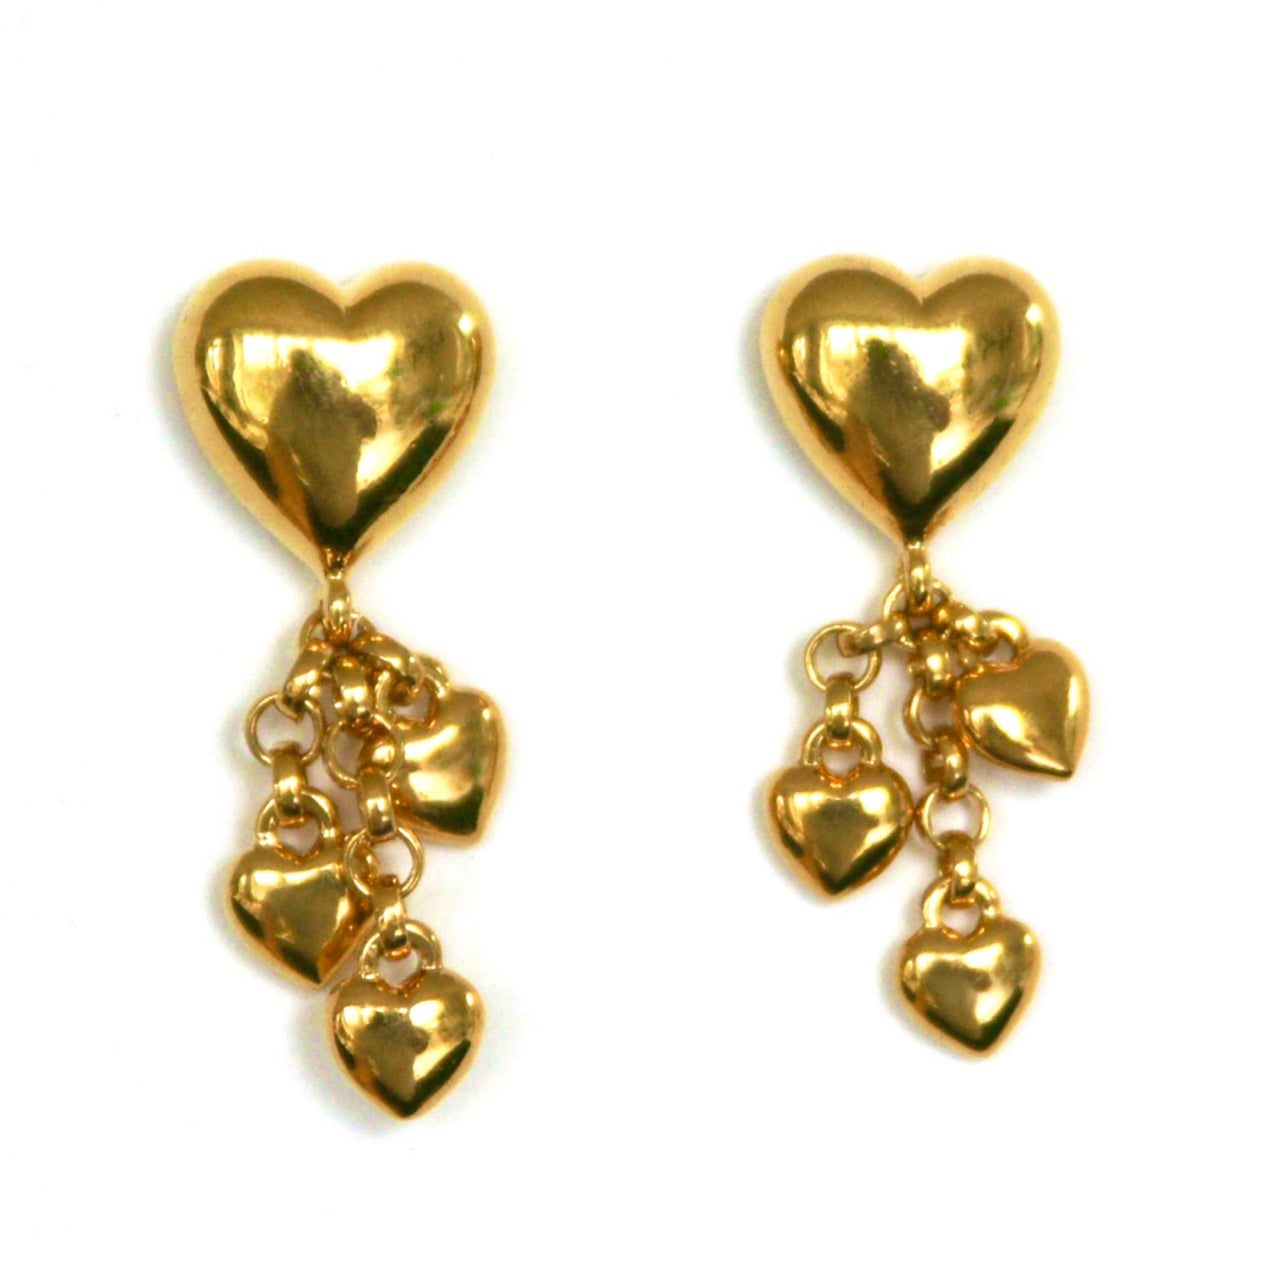 Vintage Heart Charms Drop Earrings, Pierced